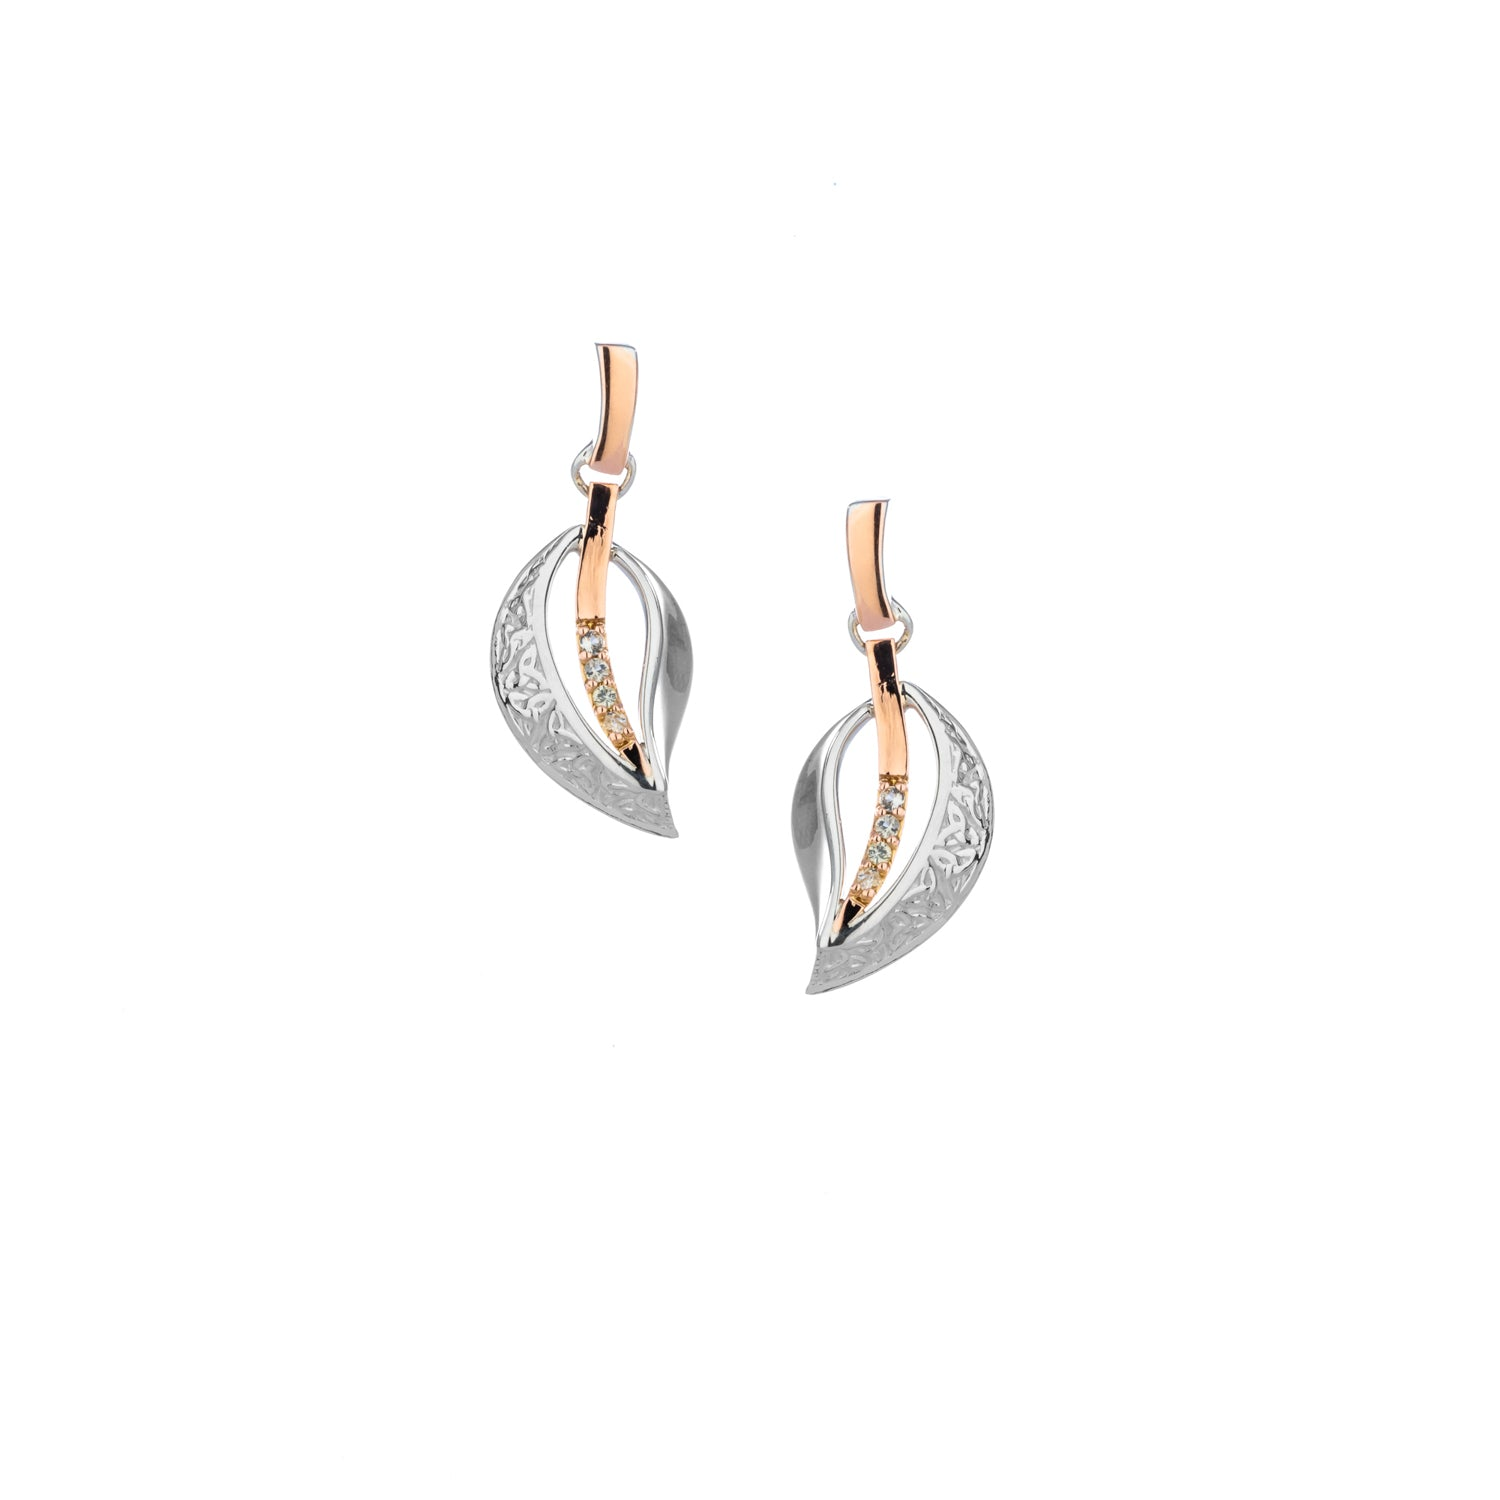 Earrings 10k Rose White Sapphire Trinity Leaf Post Earrings from welch and company jewelers near syracuse ny